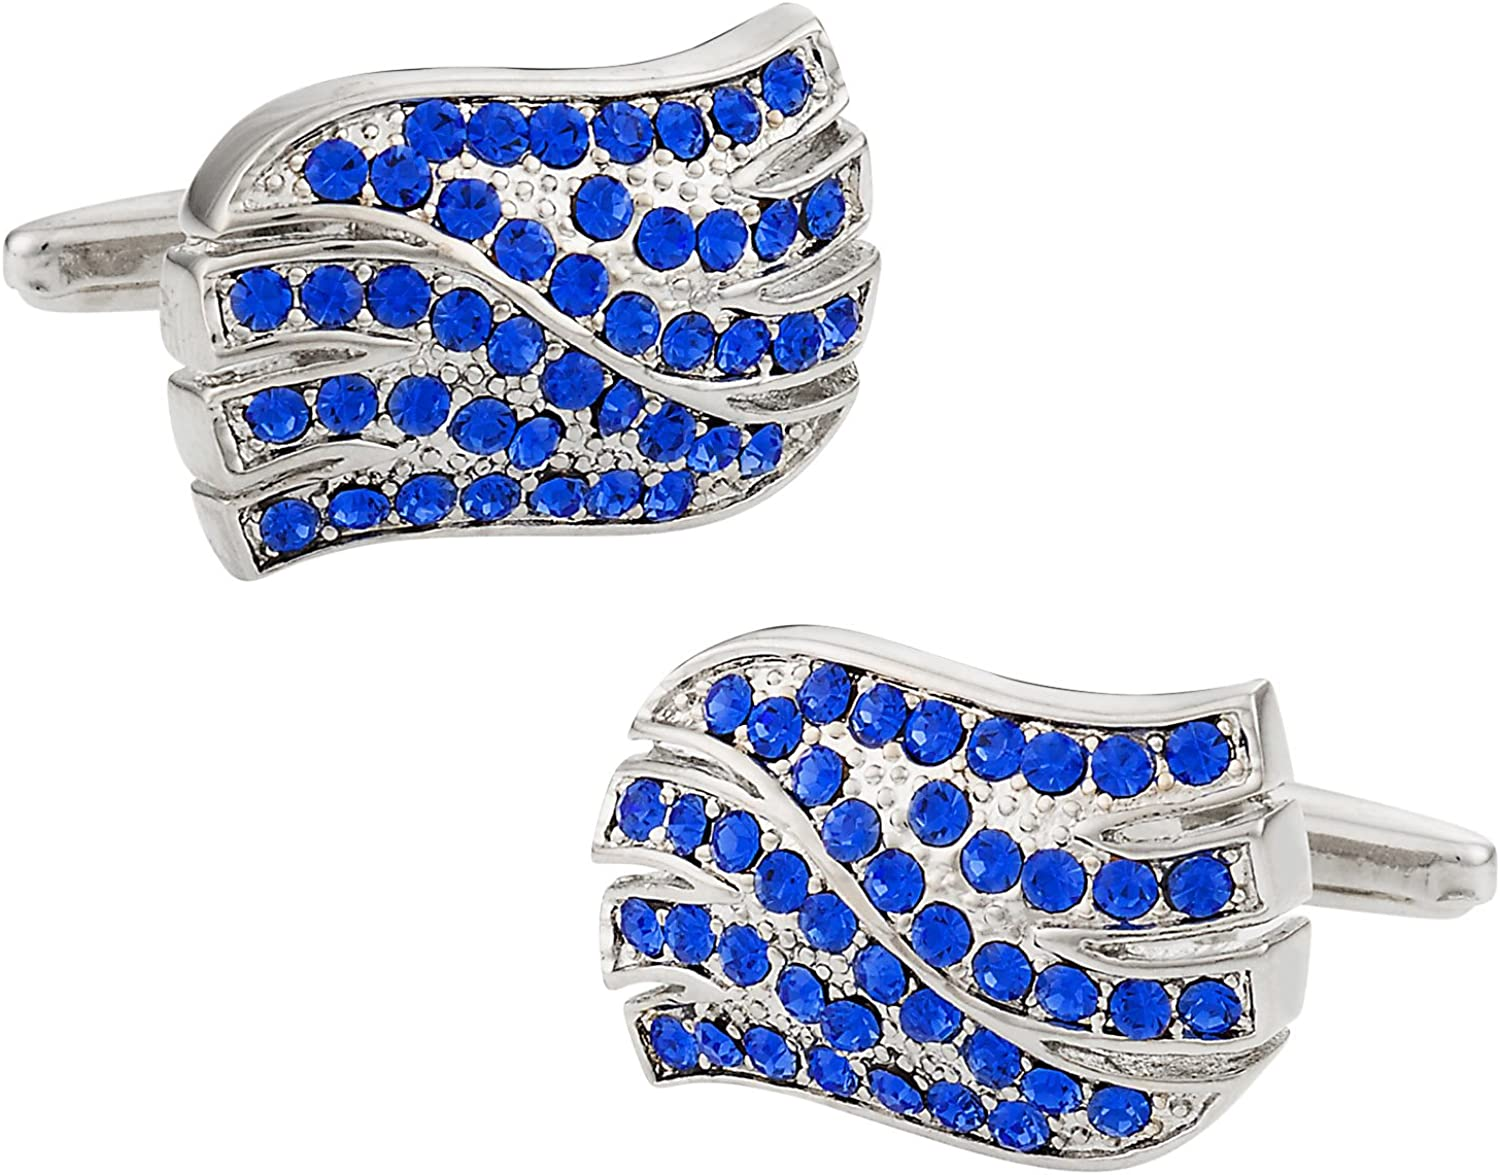 Spring Max 40% OFF new work one after another Cuff-Daddy Sapphire Blue Crystal Cufflinks Wave with Presentatio